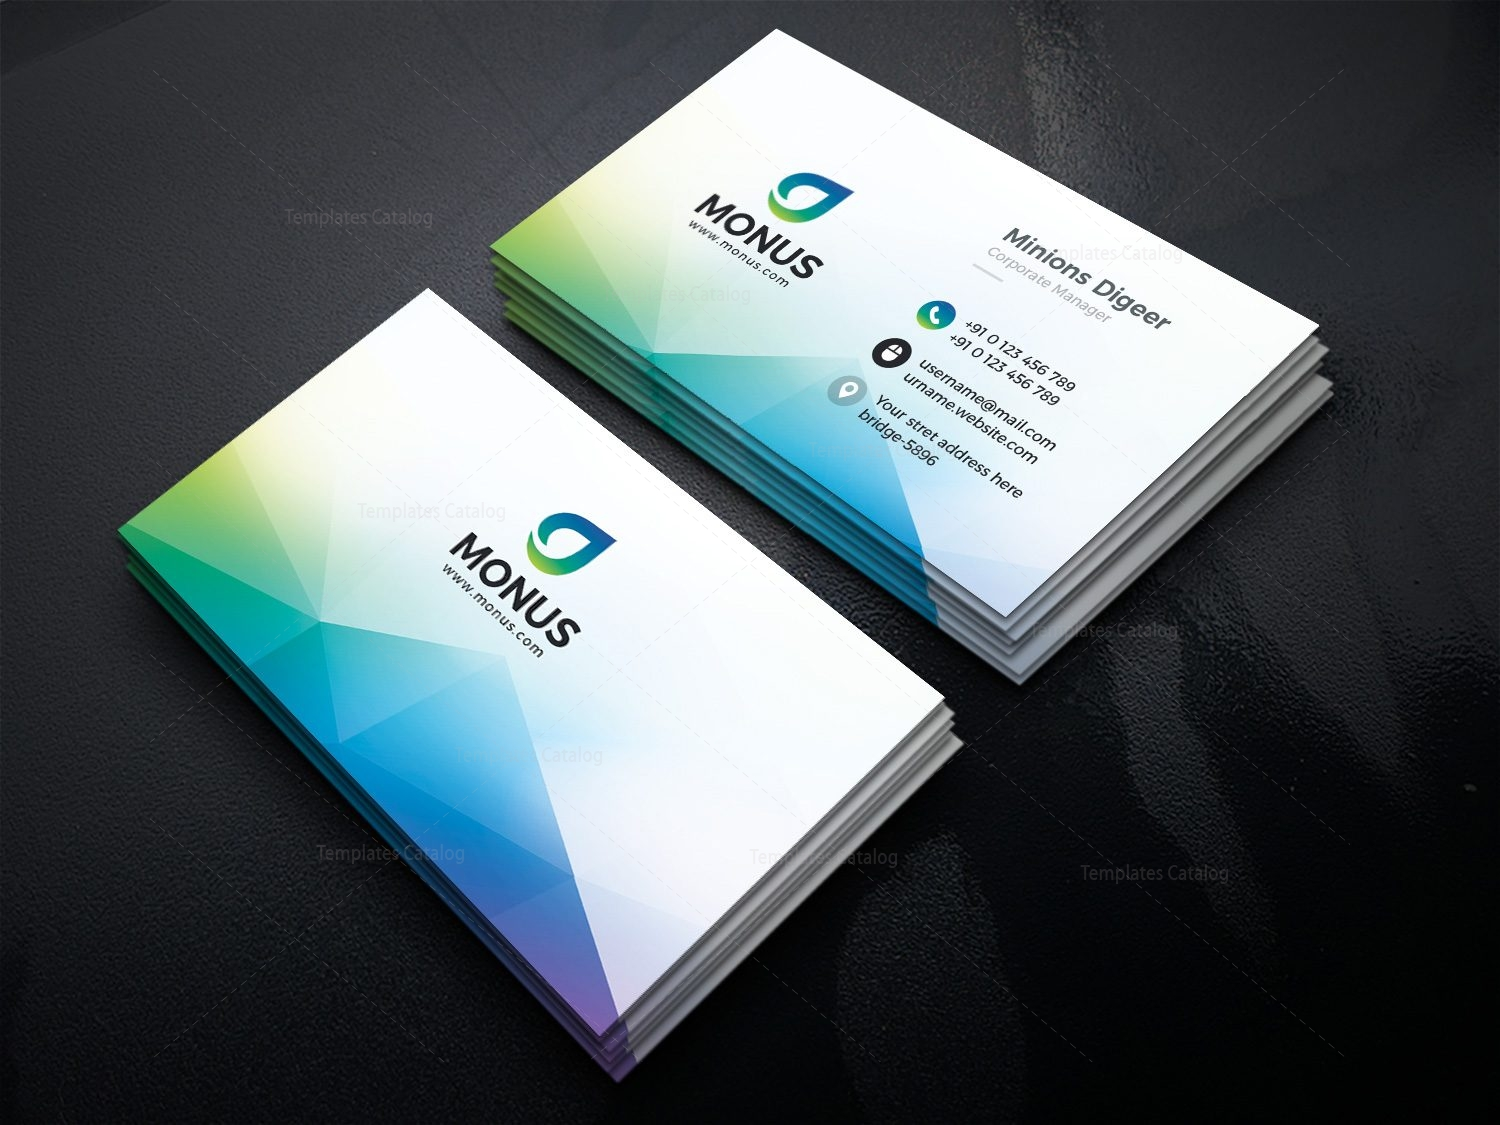 Aurora modern business card design template 001593 template catalog aurora modern business card design template friedricerecipe Gallery